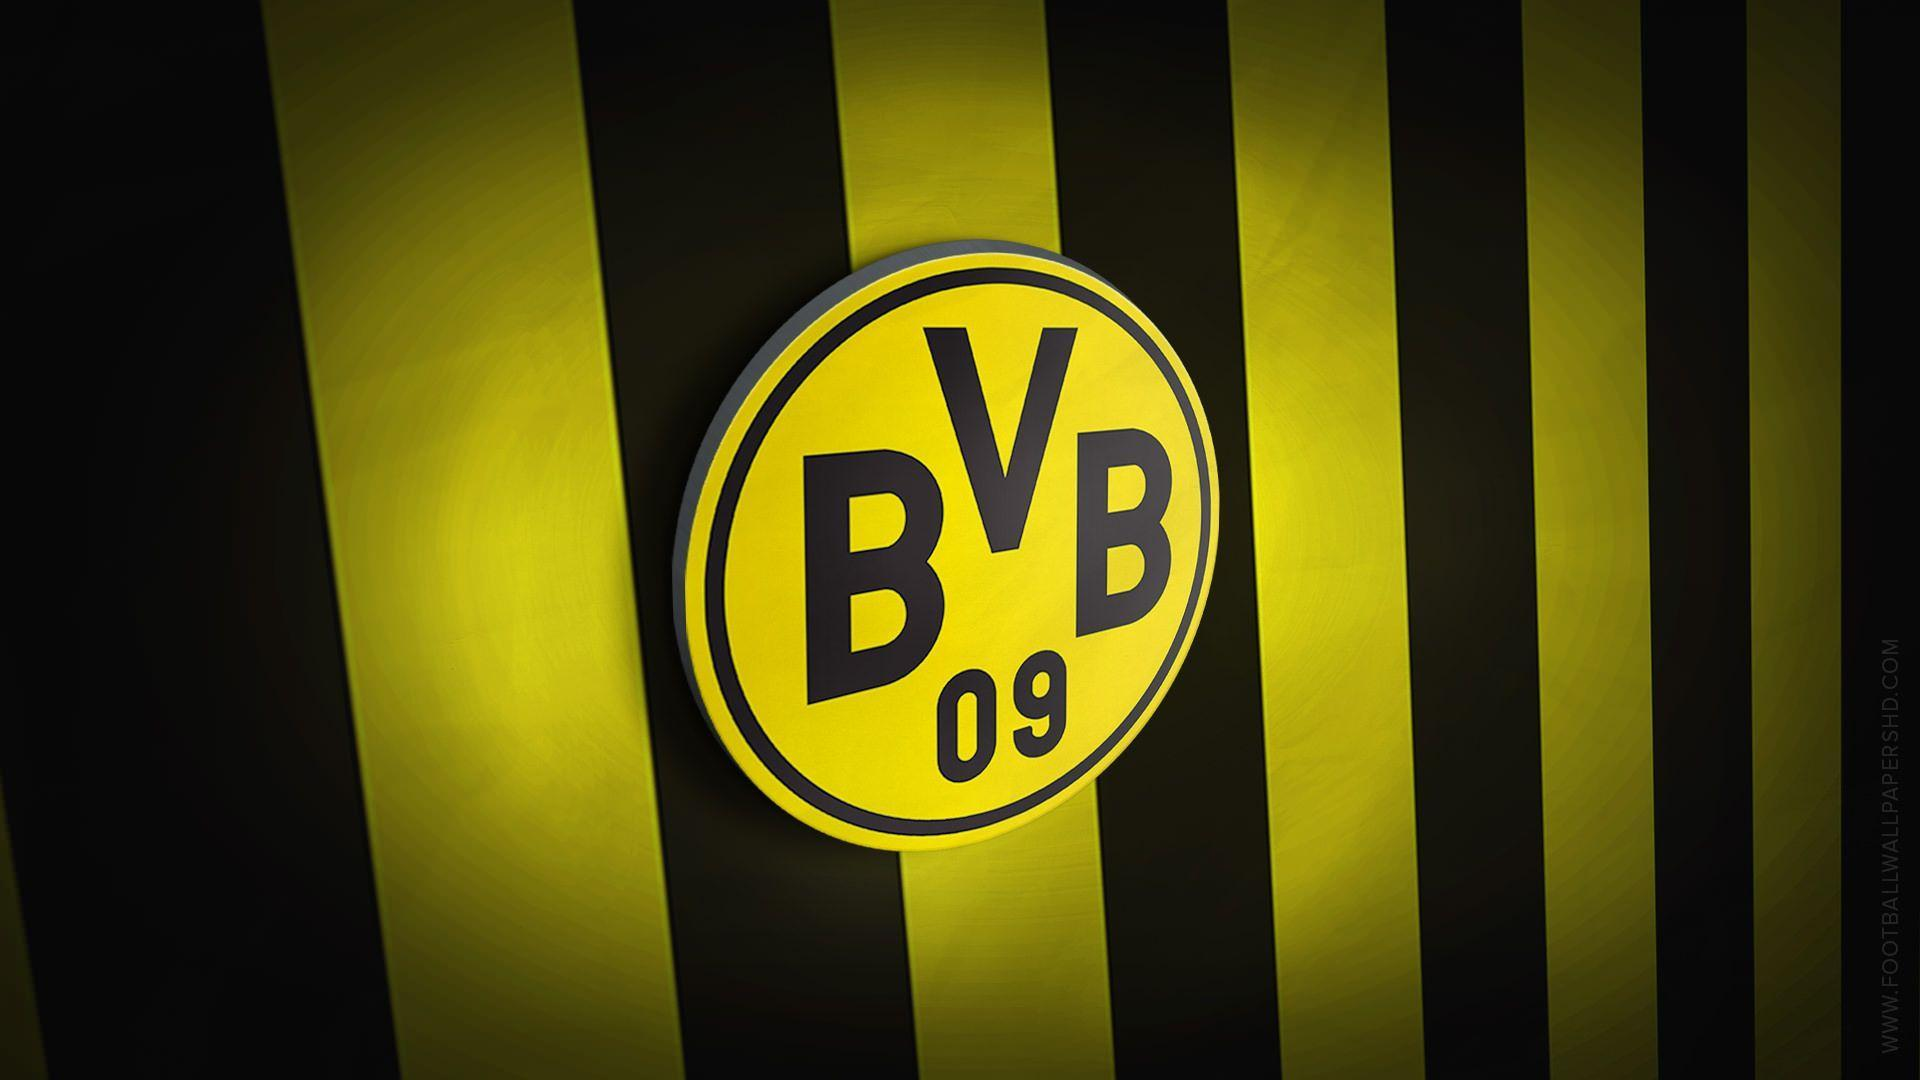 borussia dortmund wallpapers wallpaper cave. Black Bedroom Furniture Sets. Home Design Ideas